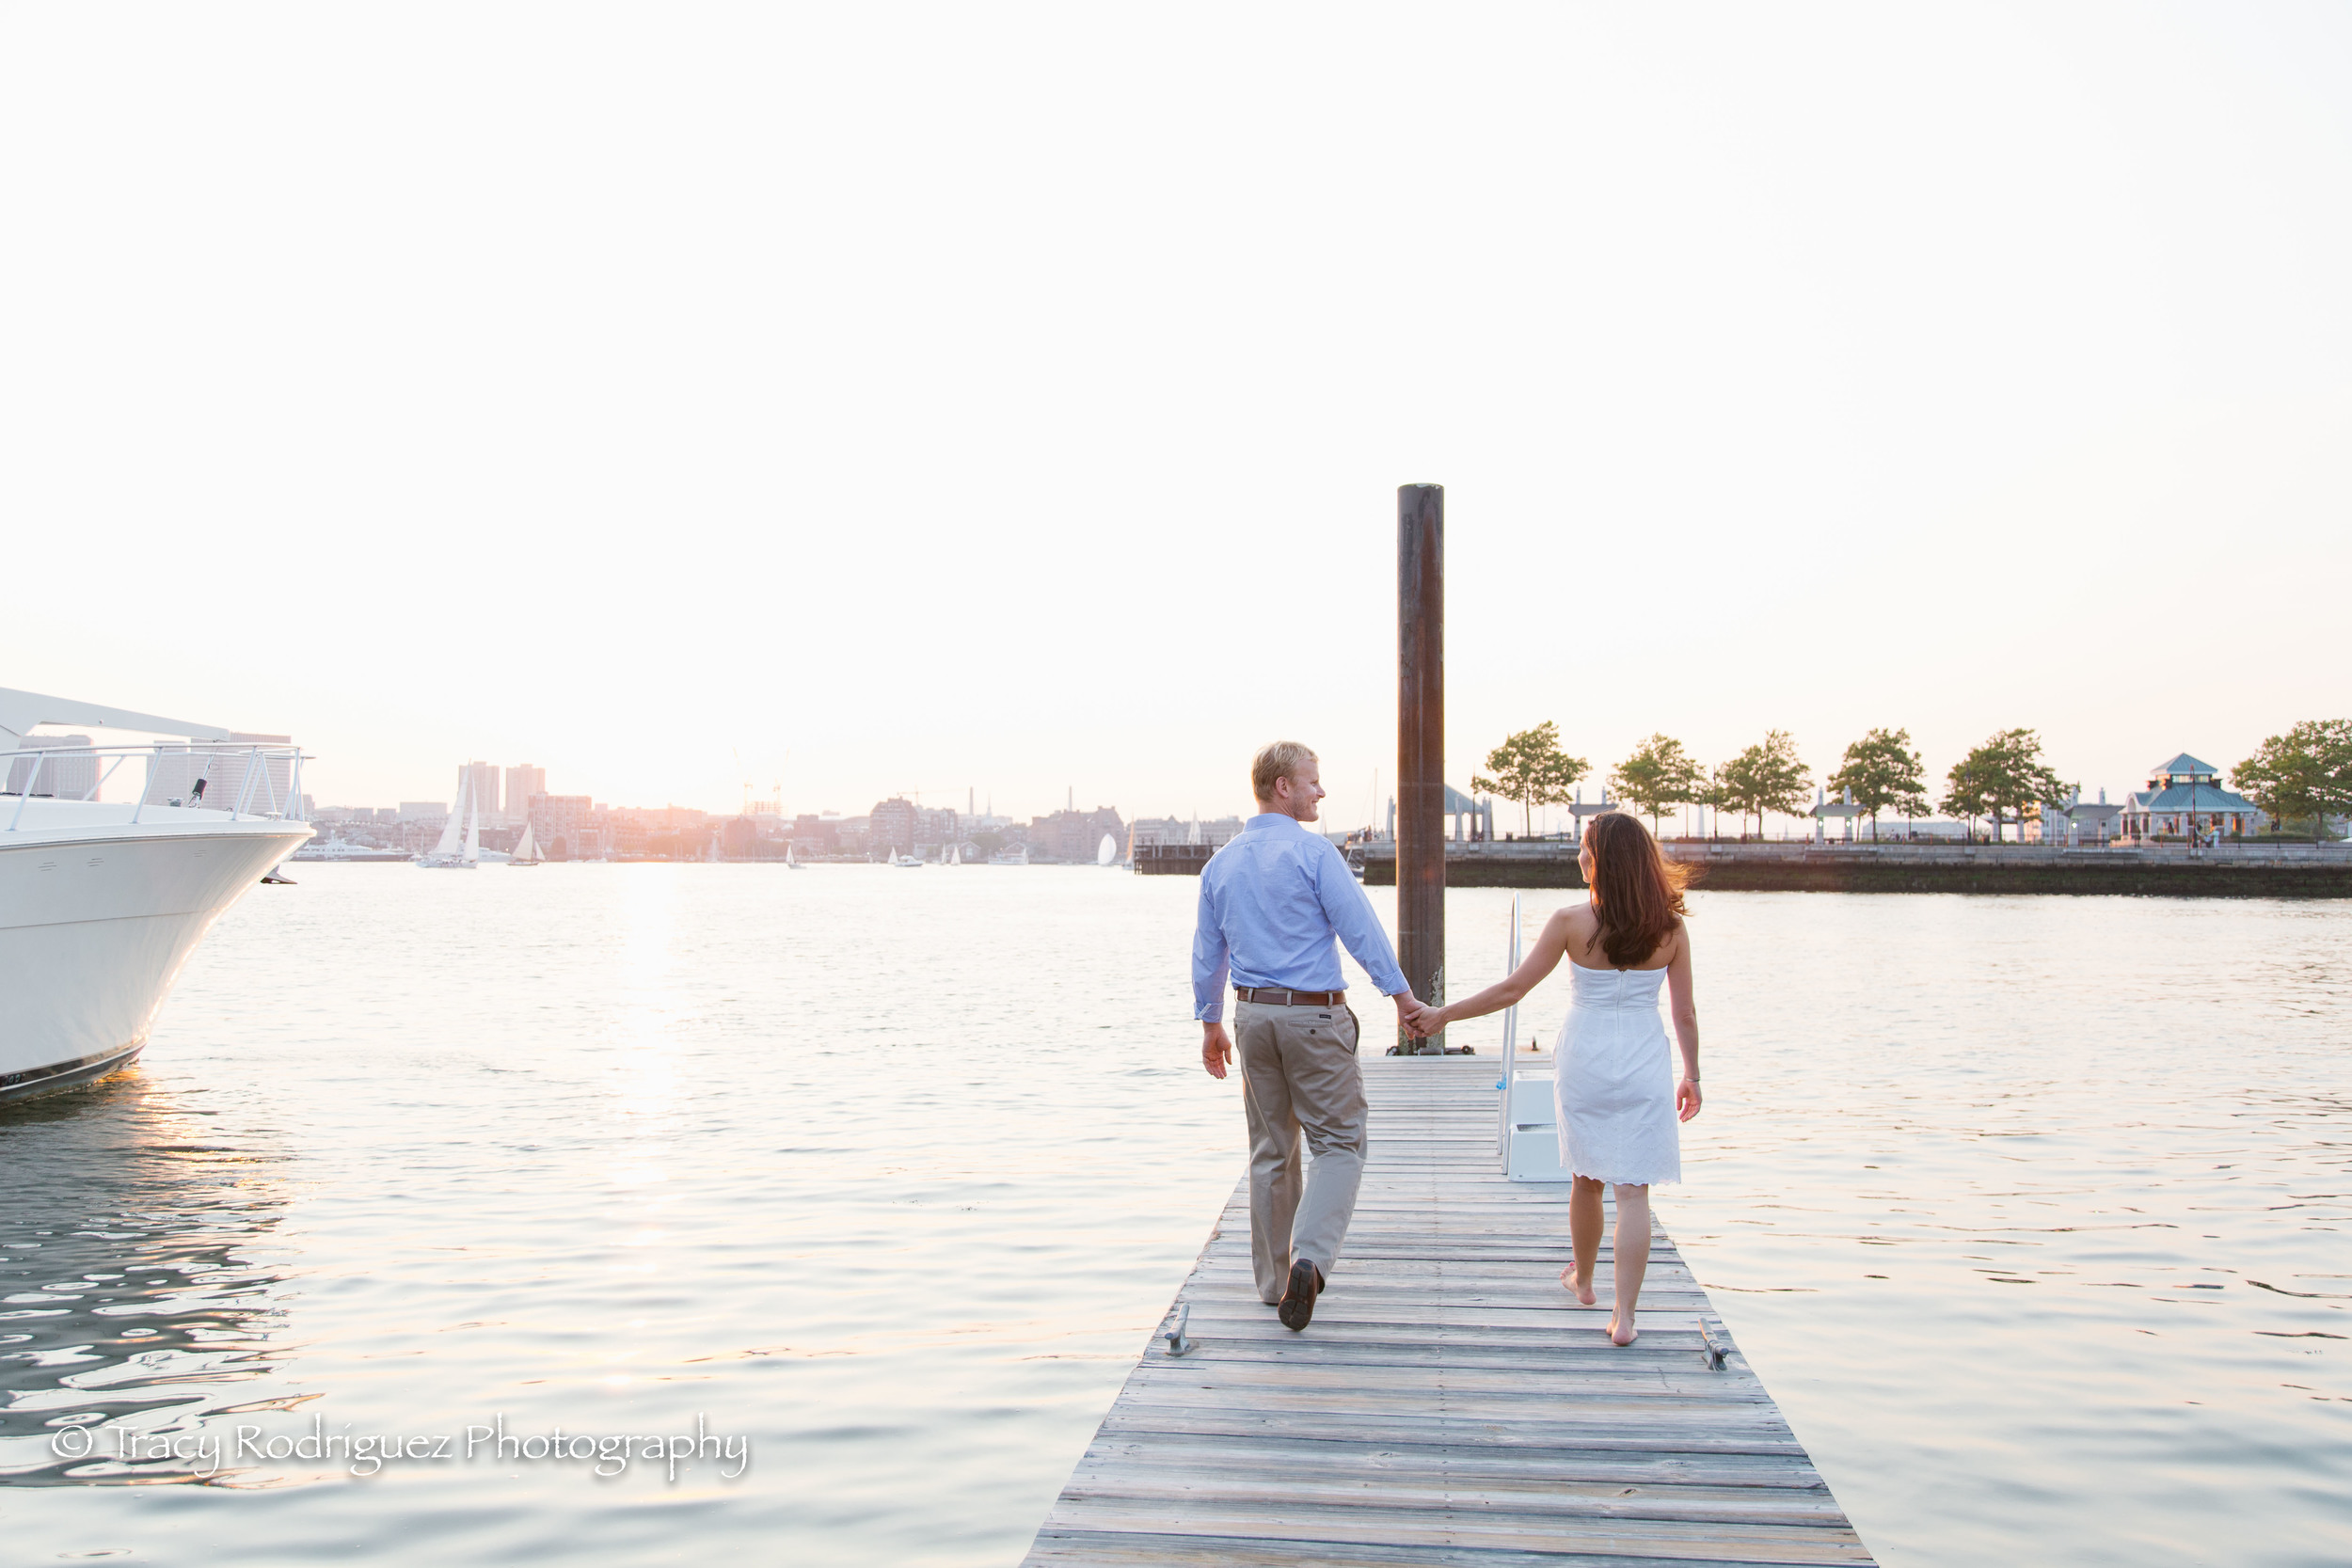 TracyRodriguezPhotography-Engagement-LowRes-33.jpg